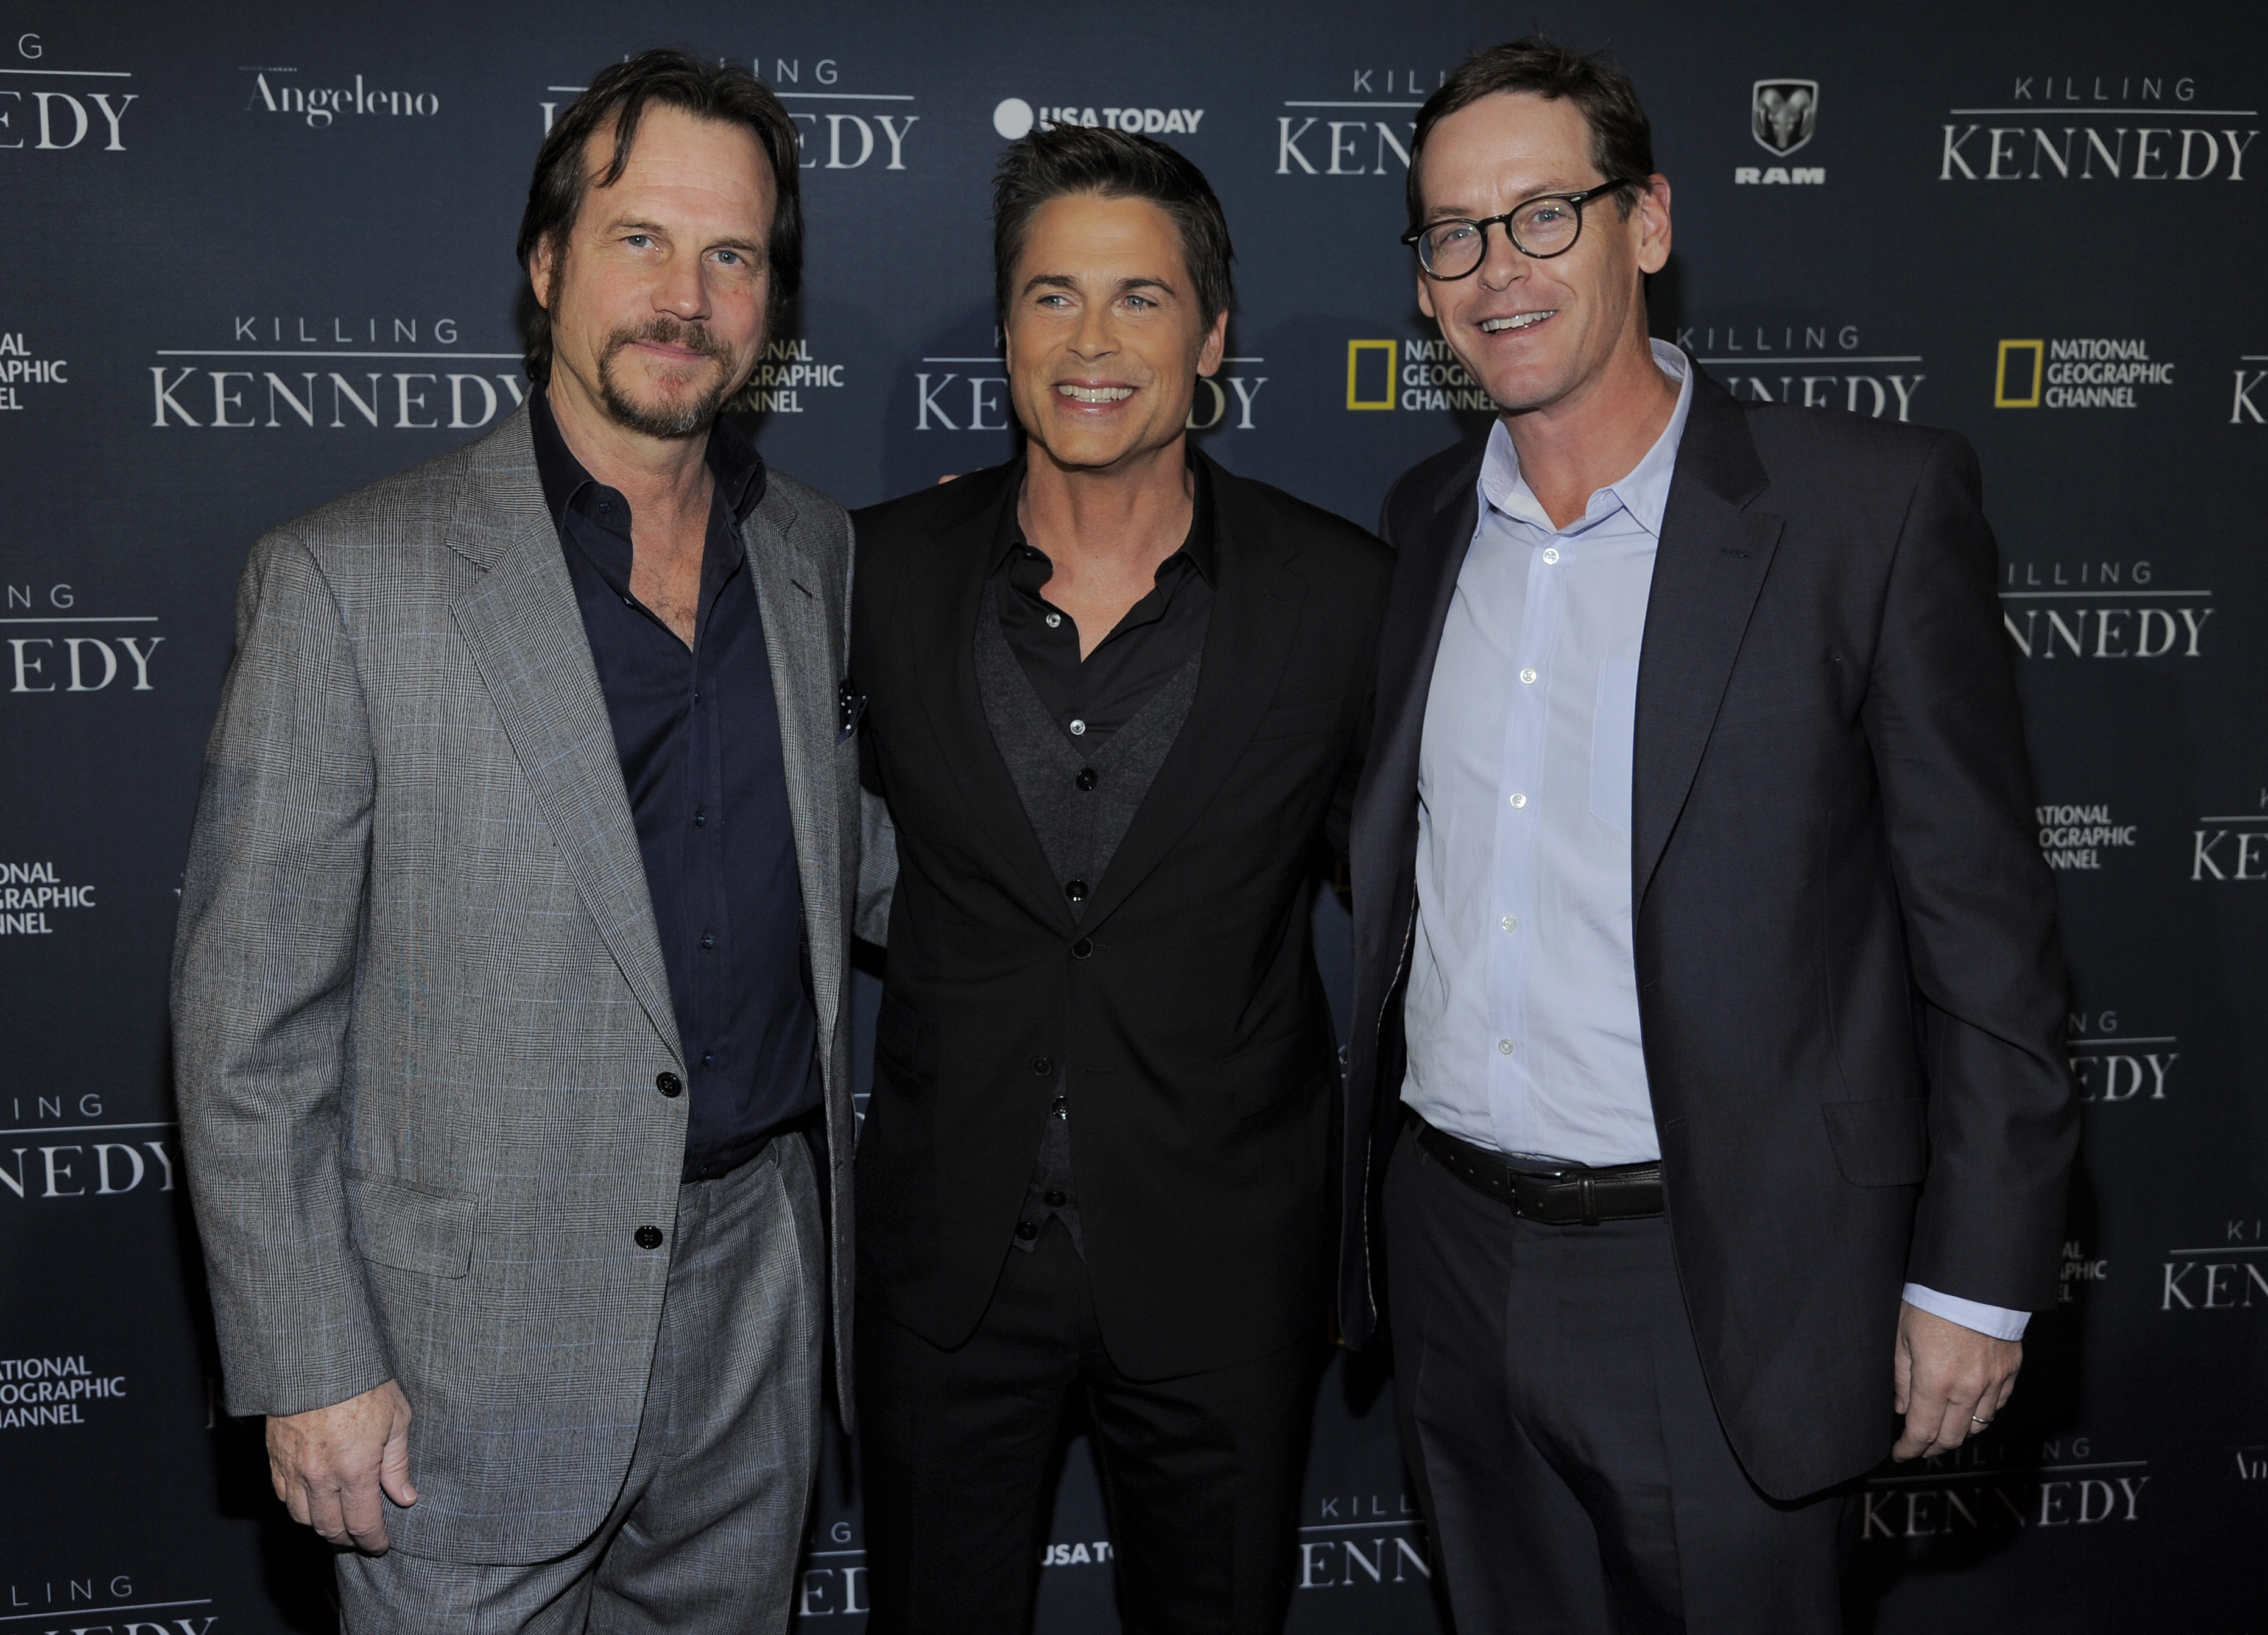 """Rob Lowe, center, star of the film """"Killing Kennedy,"""" poses with actor Bill Paxton, left, and Howard T. Owens, president of National Geographic Channel, at the premiere of the film """"Killing Kennedy"""" at the Saban Theatre on Monday, Nov. 4, 2013 in Beverly Hills, Calif. (Photo by Chris Pizzello/Invision/AP)"""